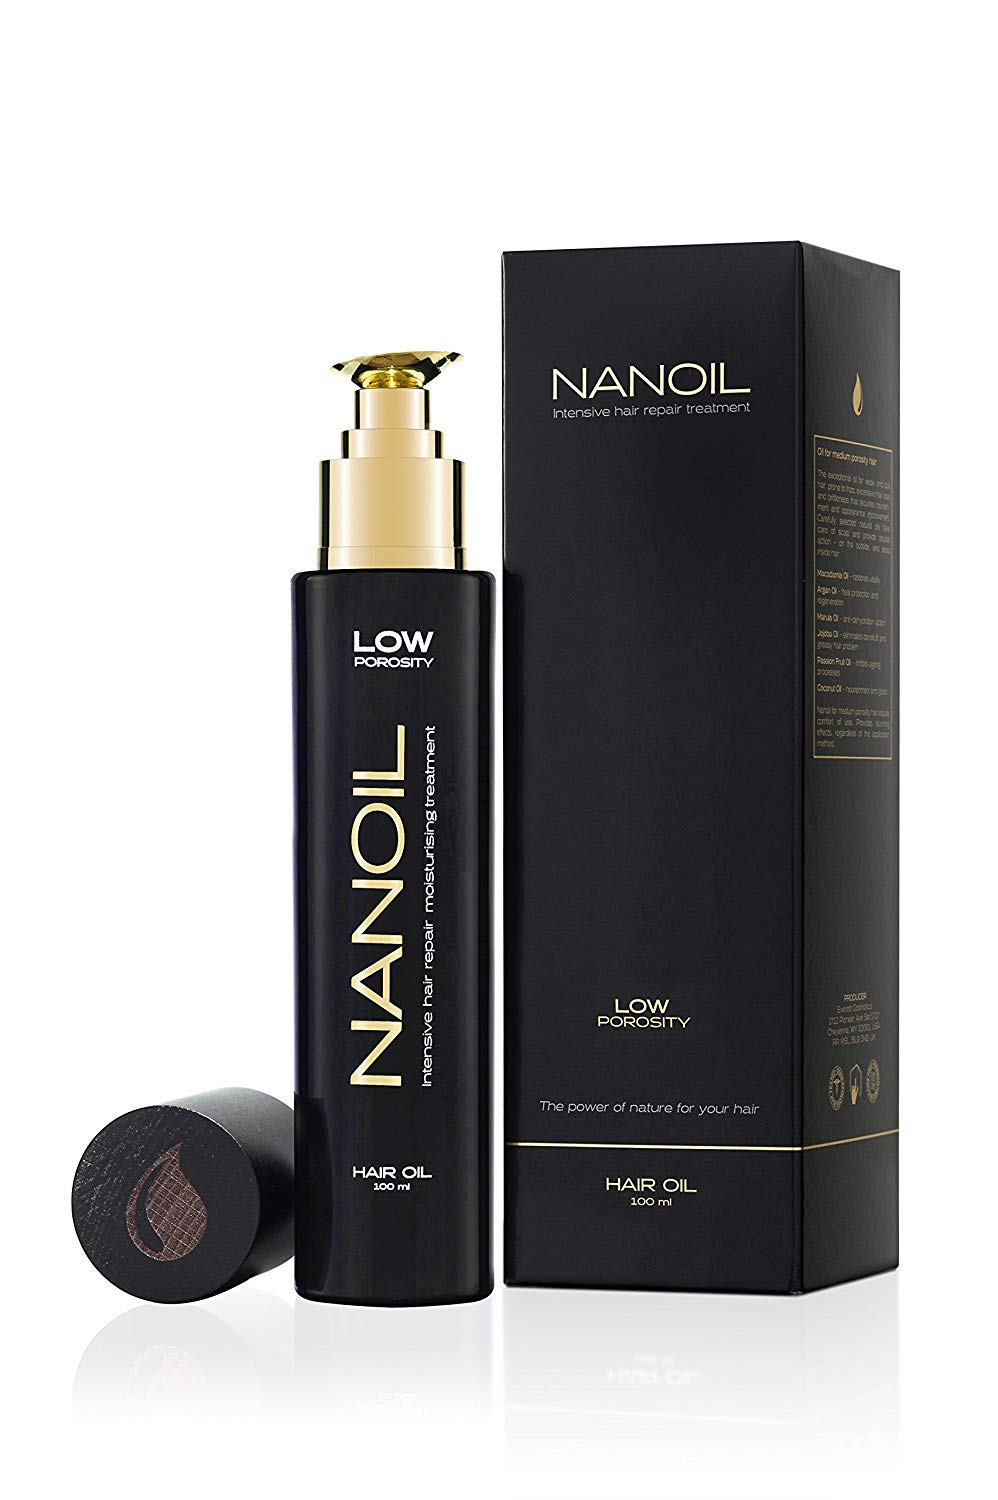 Nanoil, Low Porosity Control Hair Repair Oil To Moisturize and Prevent Dryness and Frizz, Contains 9 Natural Oils, 100 Milliliters